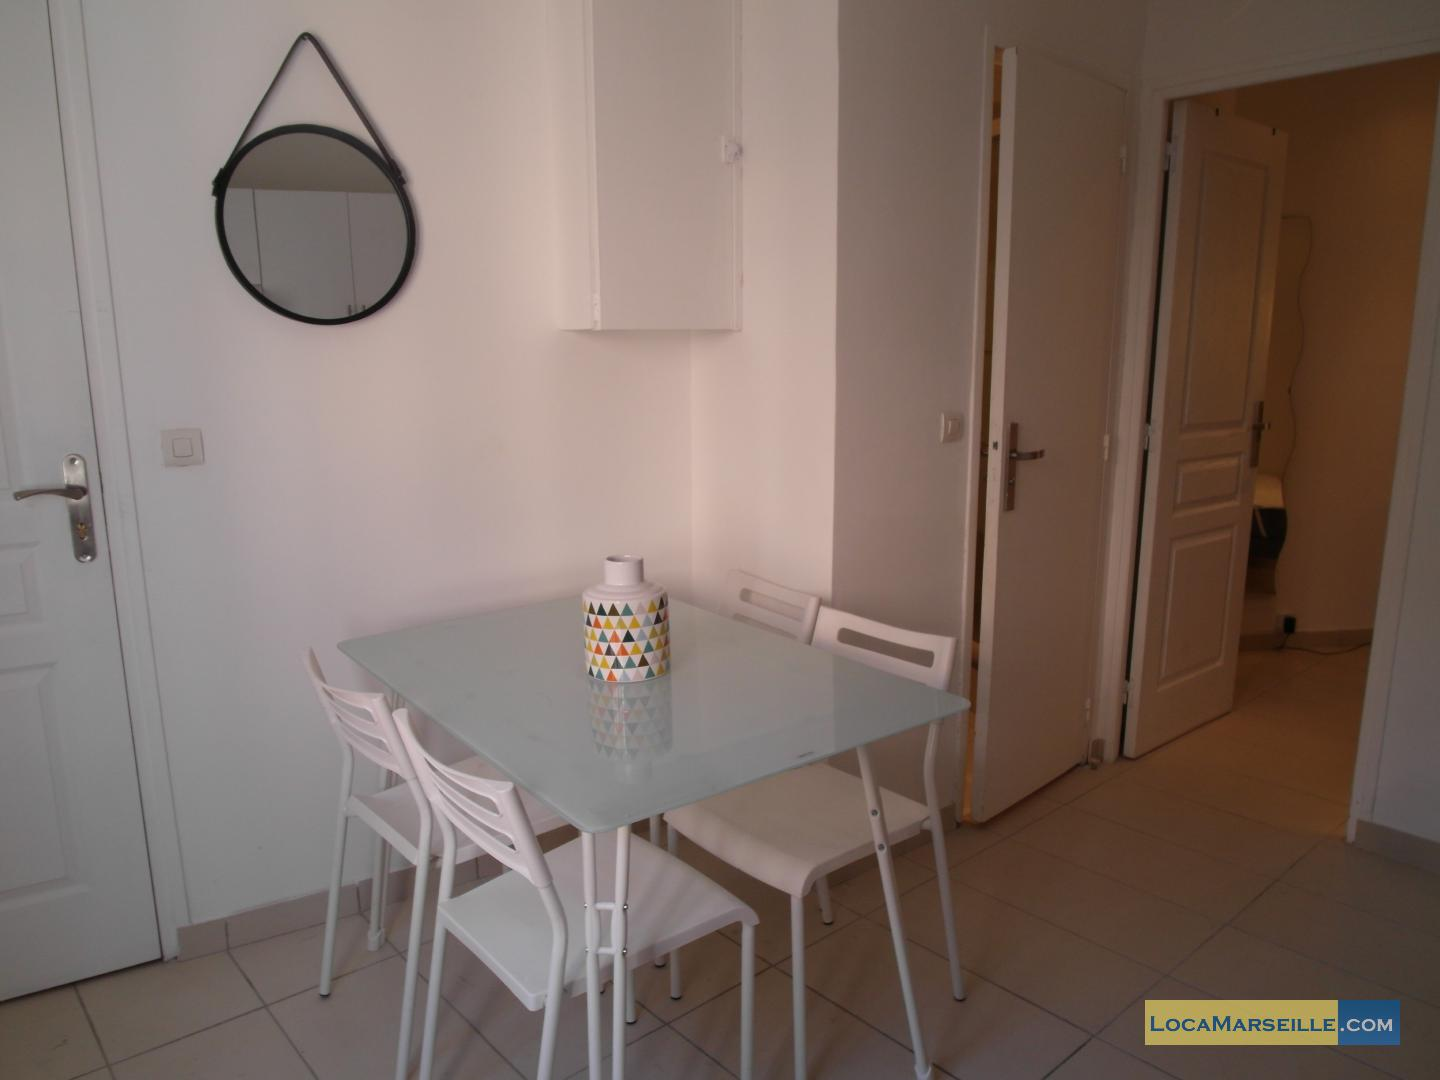 Furnished Studio For Rent In Marseille 2nd District